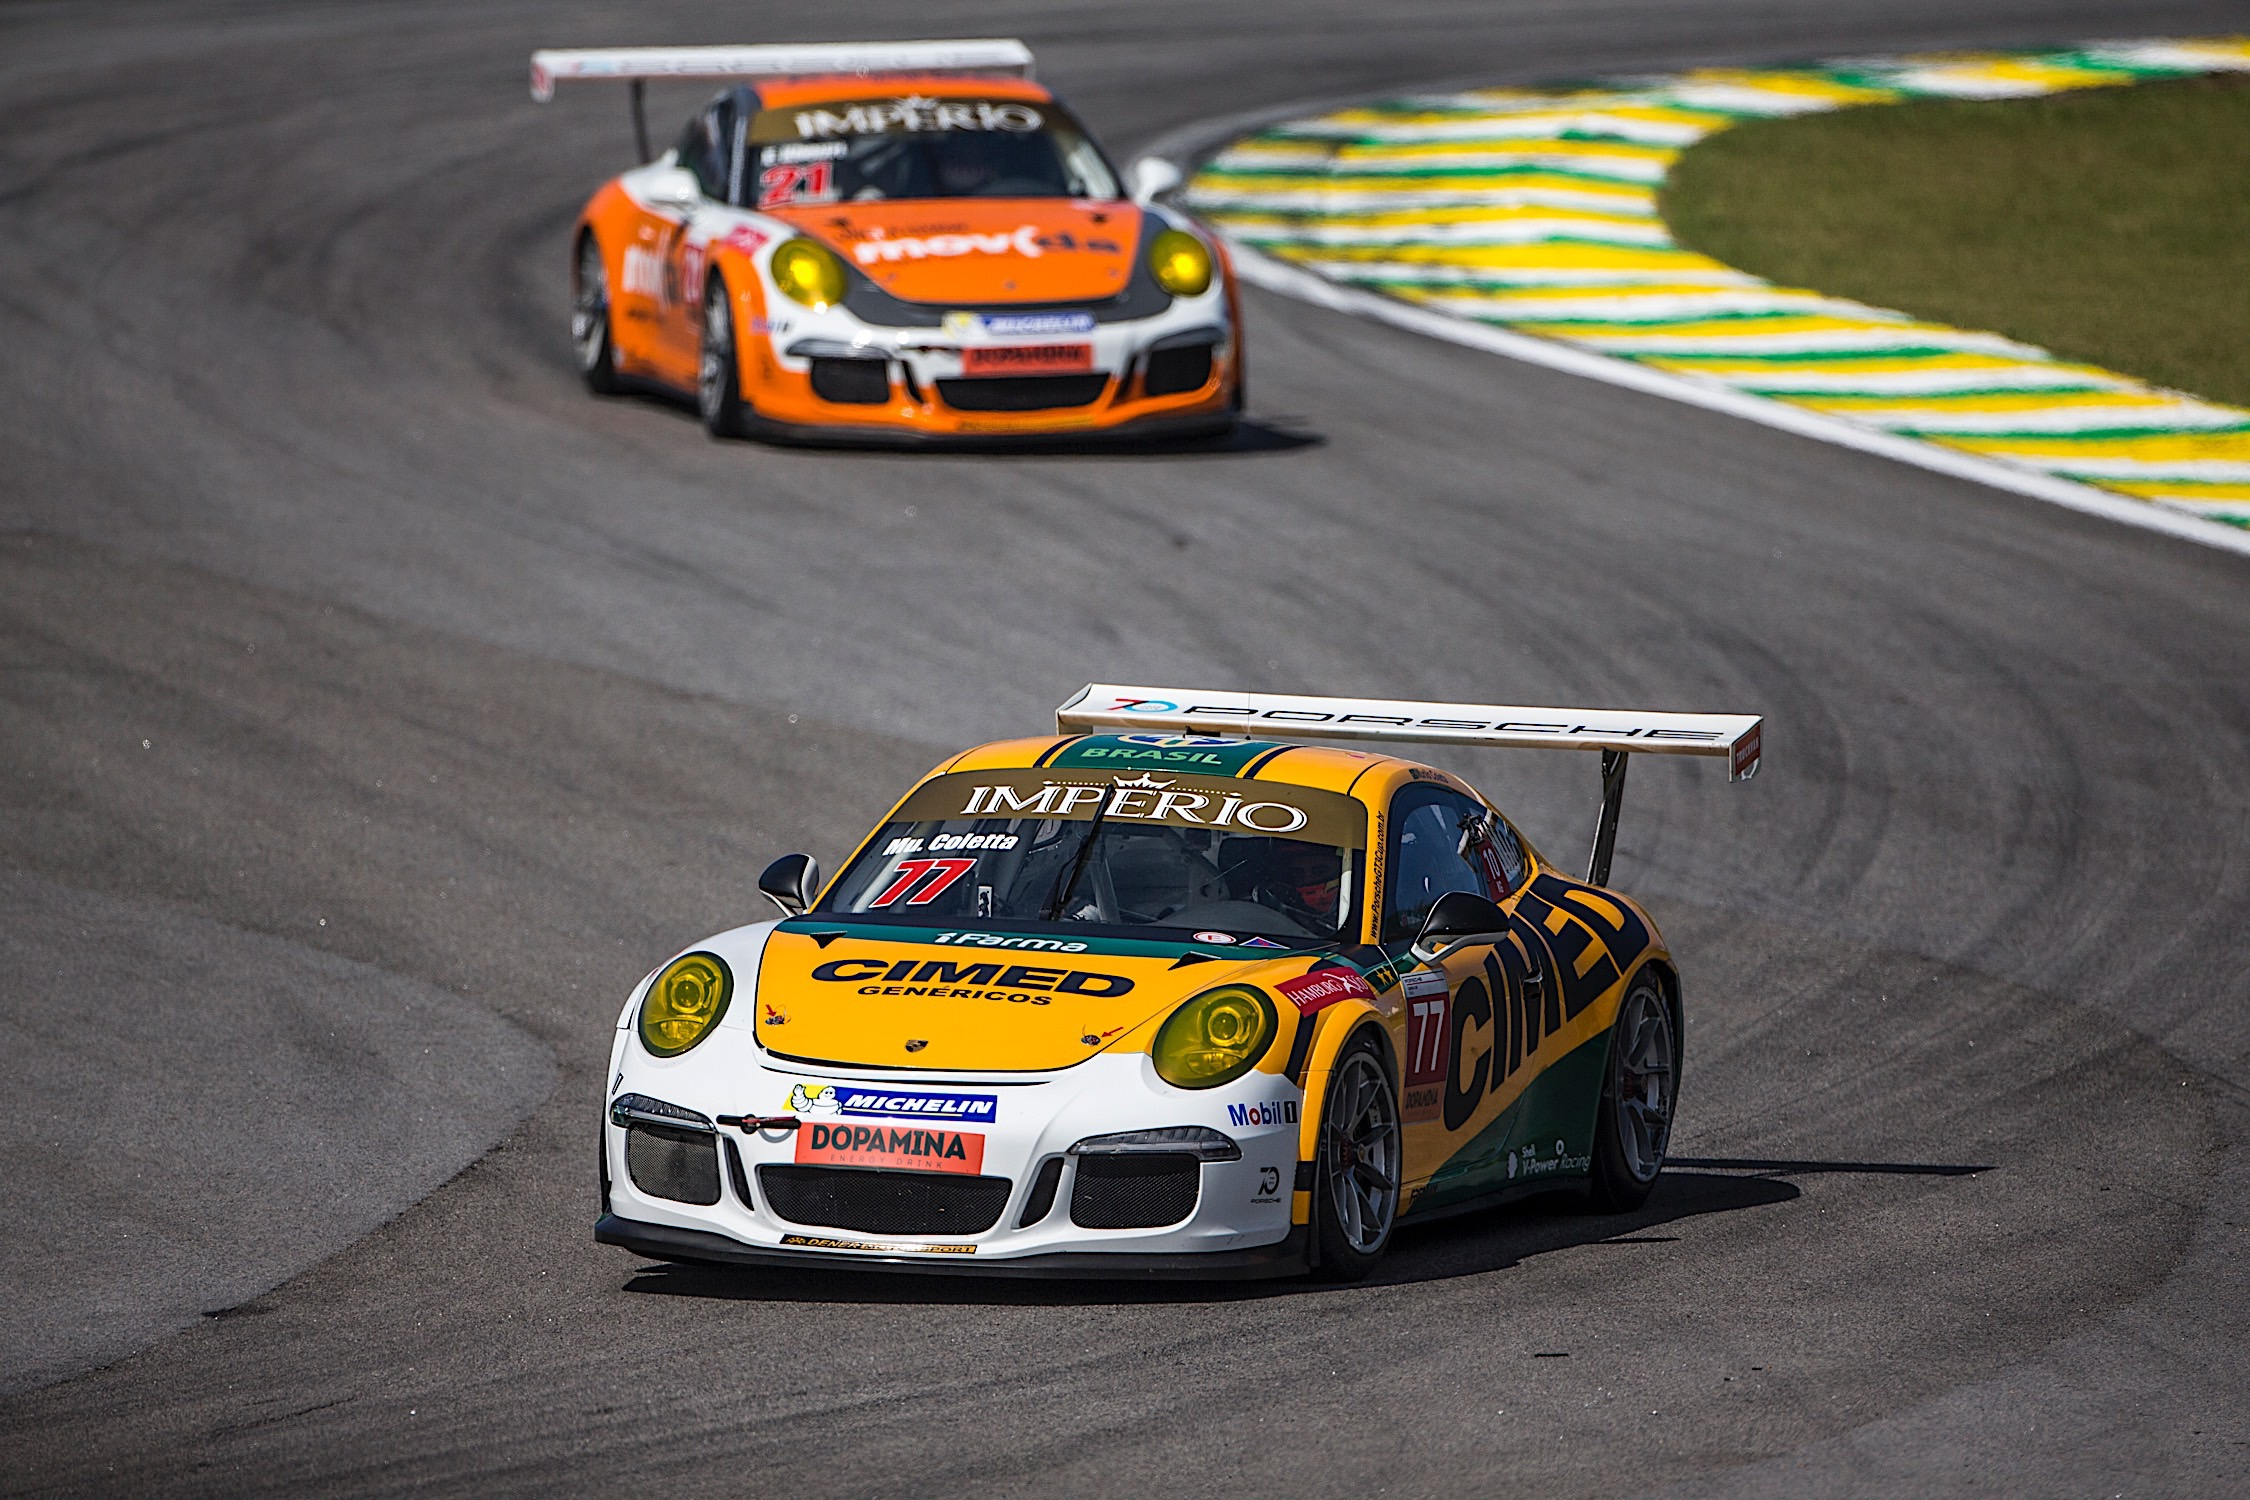 Photo of Porsche Endurance – Três campeões da Stock Car da Cimed Racing encaram desafio dos 500 Km de Interlagos da Porsche